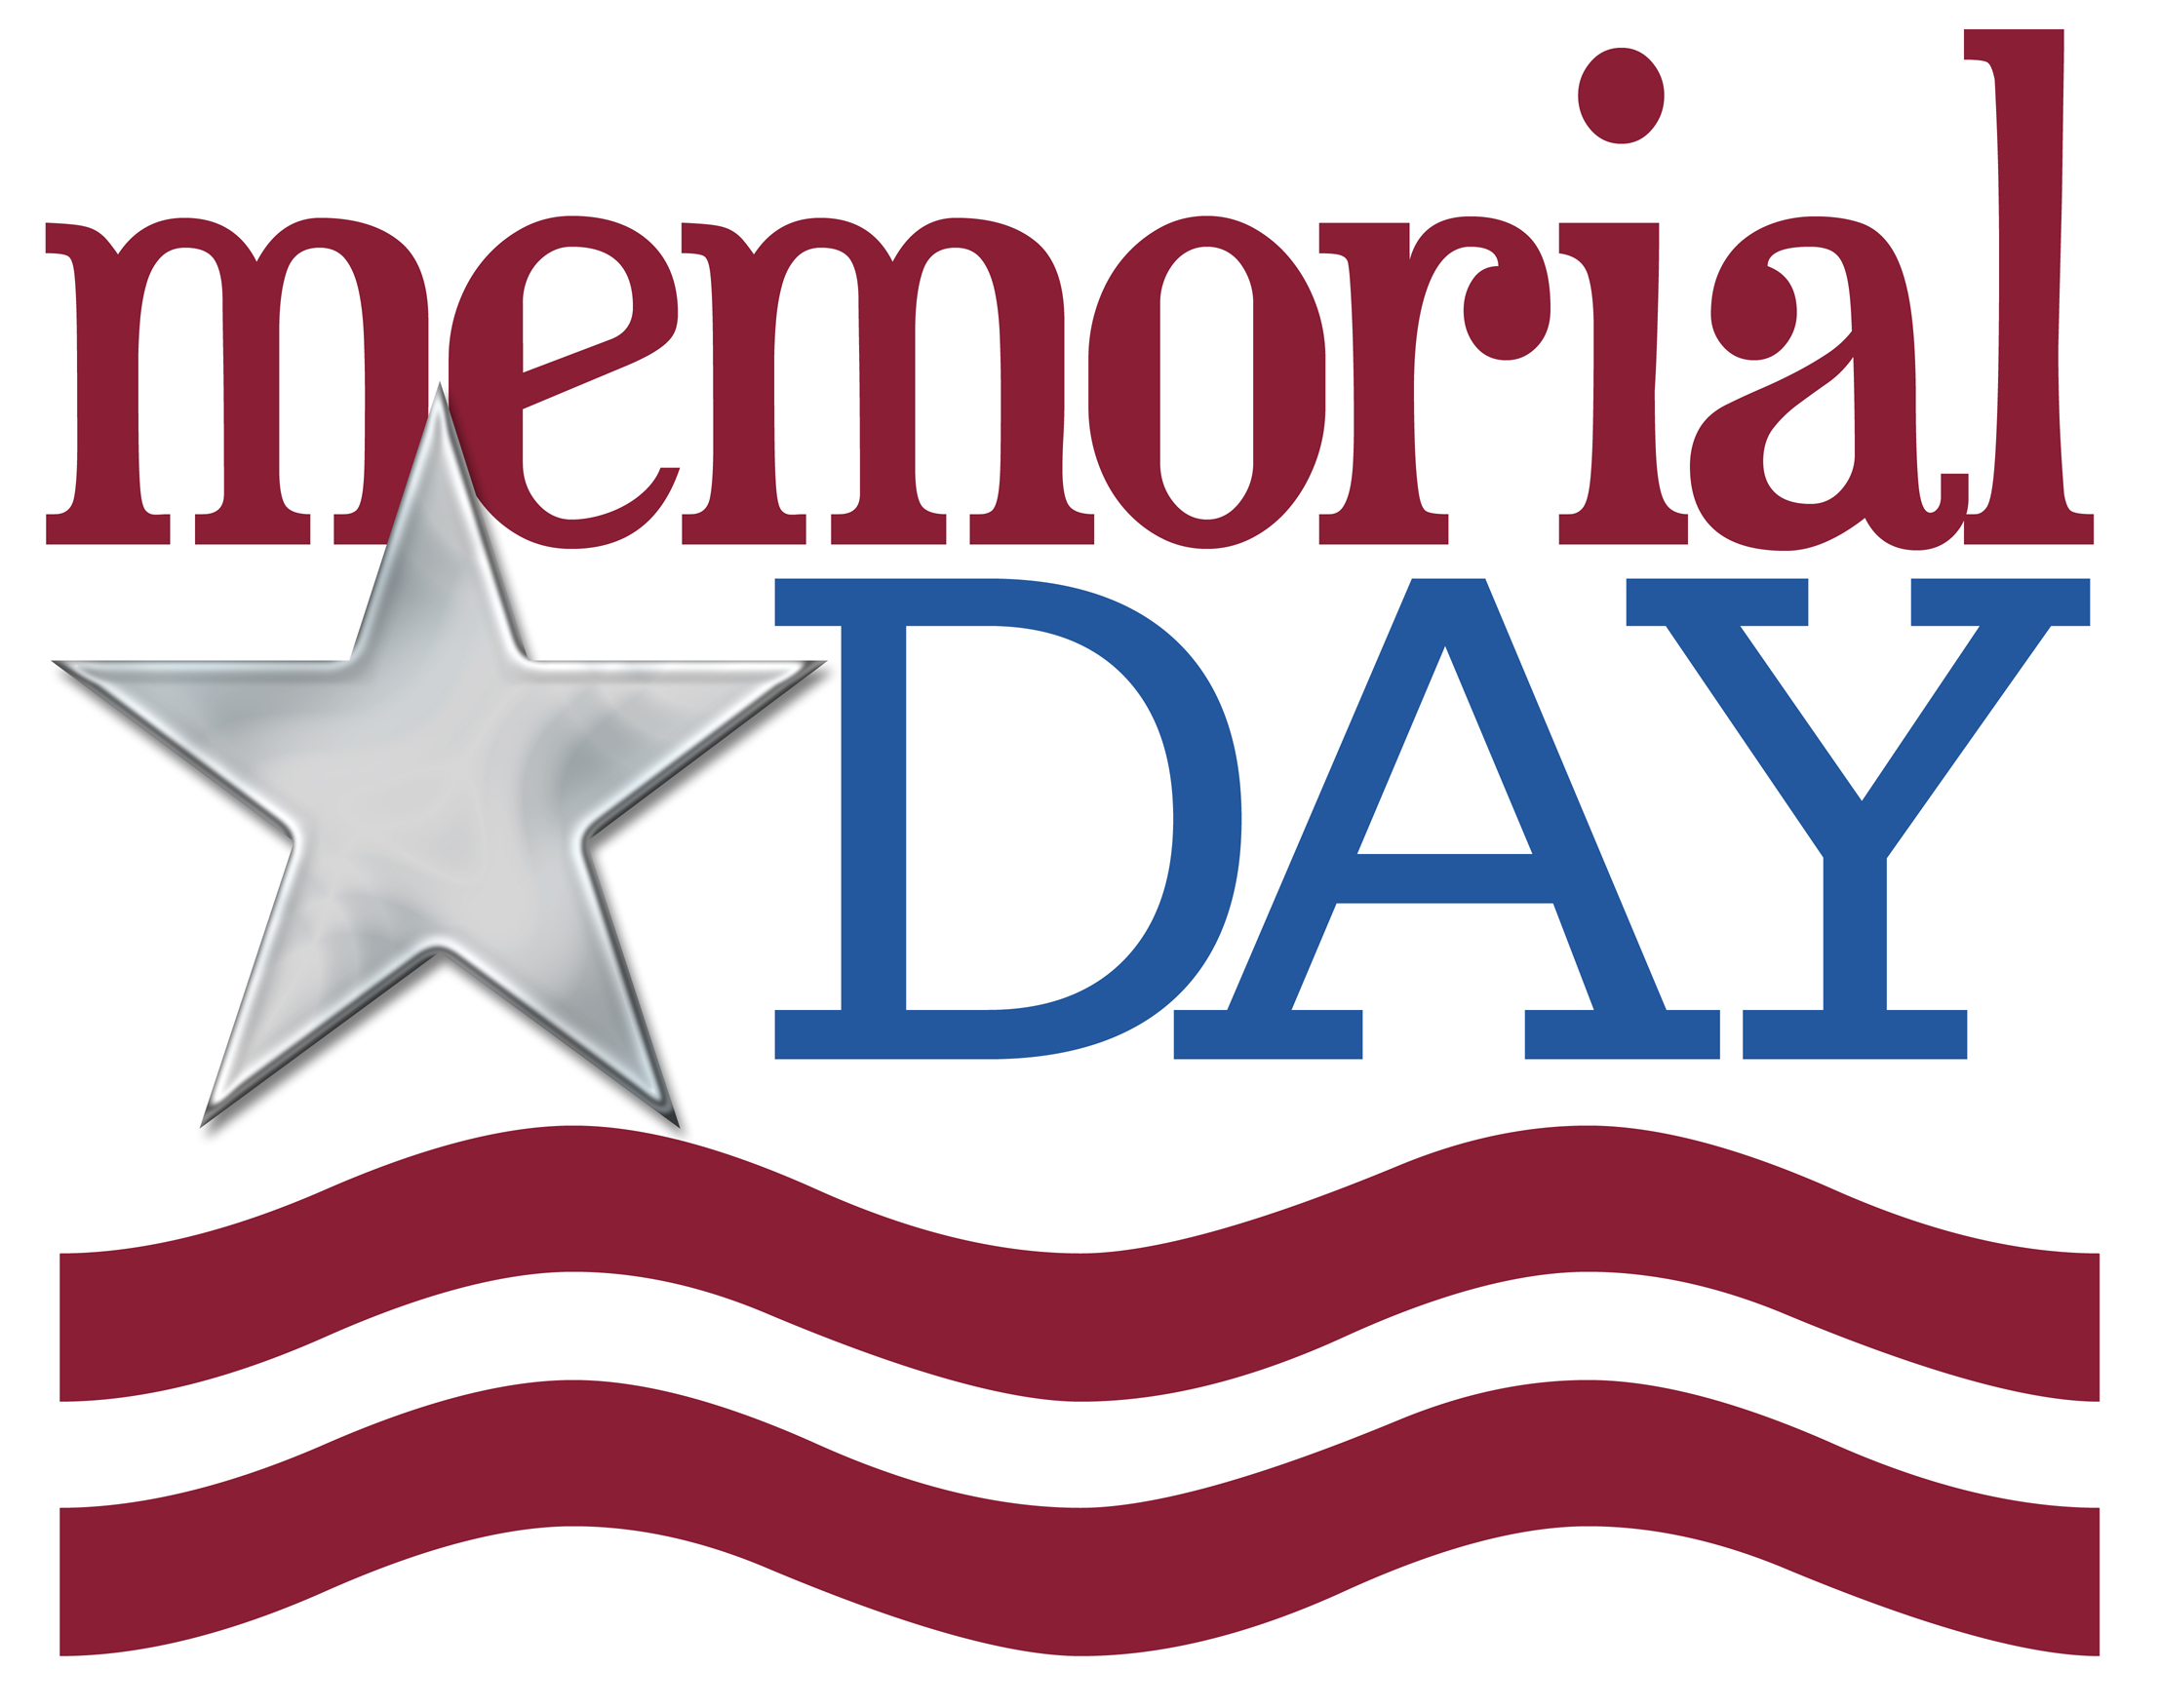 2214x1752 Animated Memorial Day Clipart Images, Black And White, Free